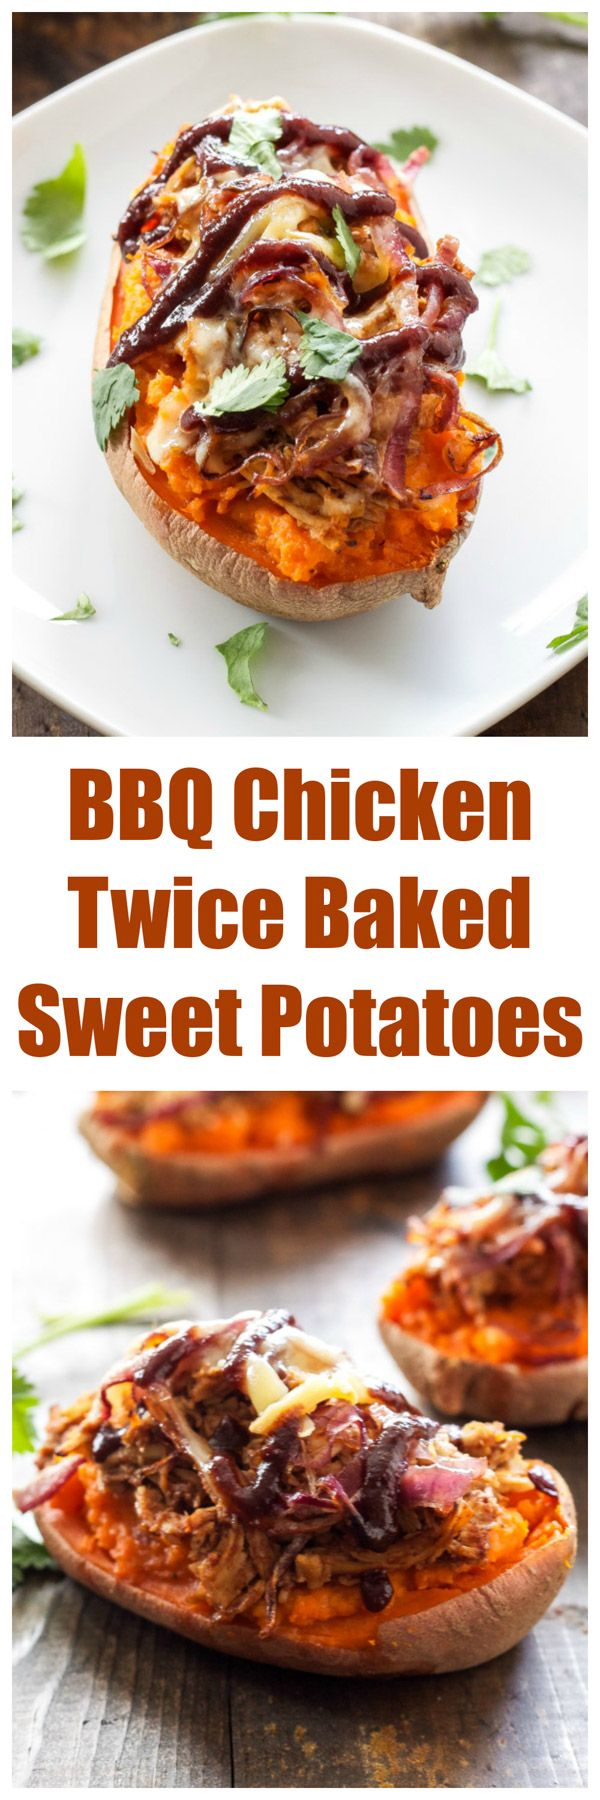 BBQ Chicken Twice Baked Sweet Potatoes   5 ingredient twice baked sweet potatoes stuffed with BBQ chicken and smoked gouda!   www.reciperunner.com